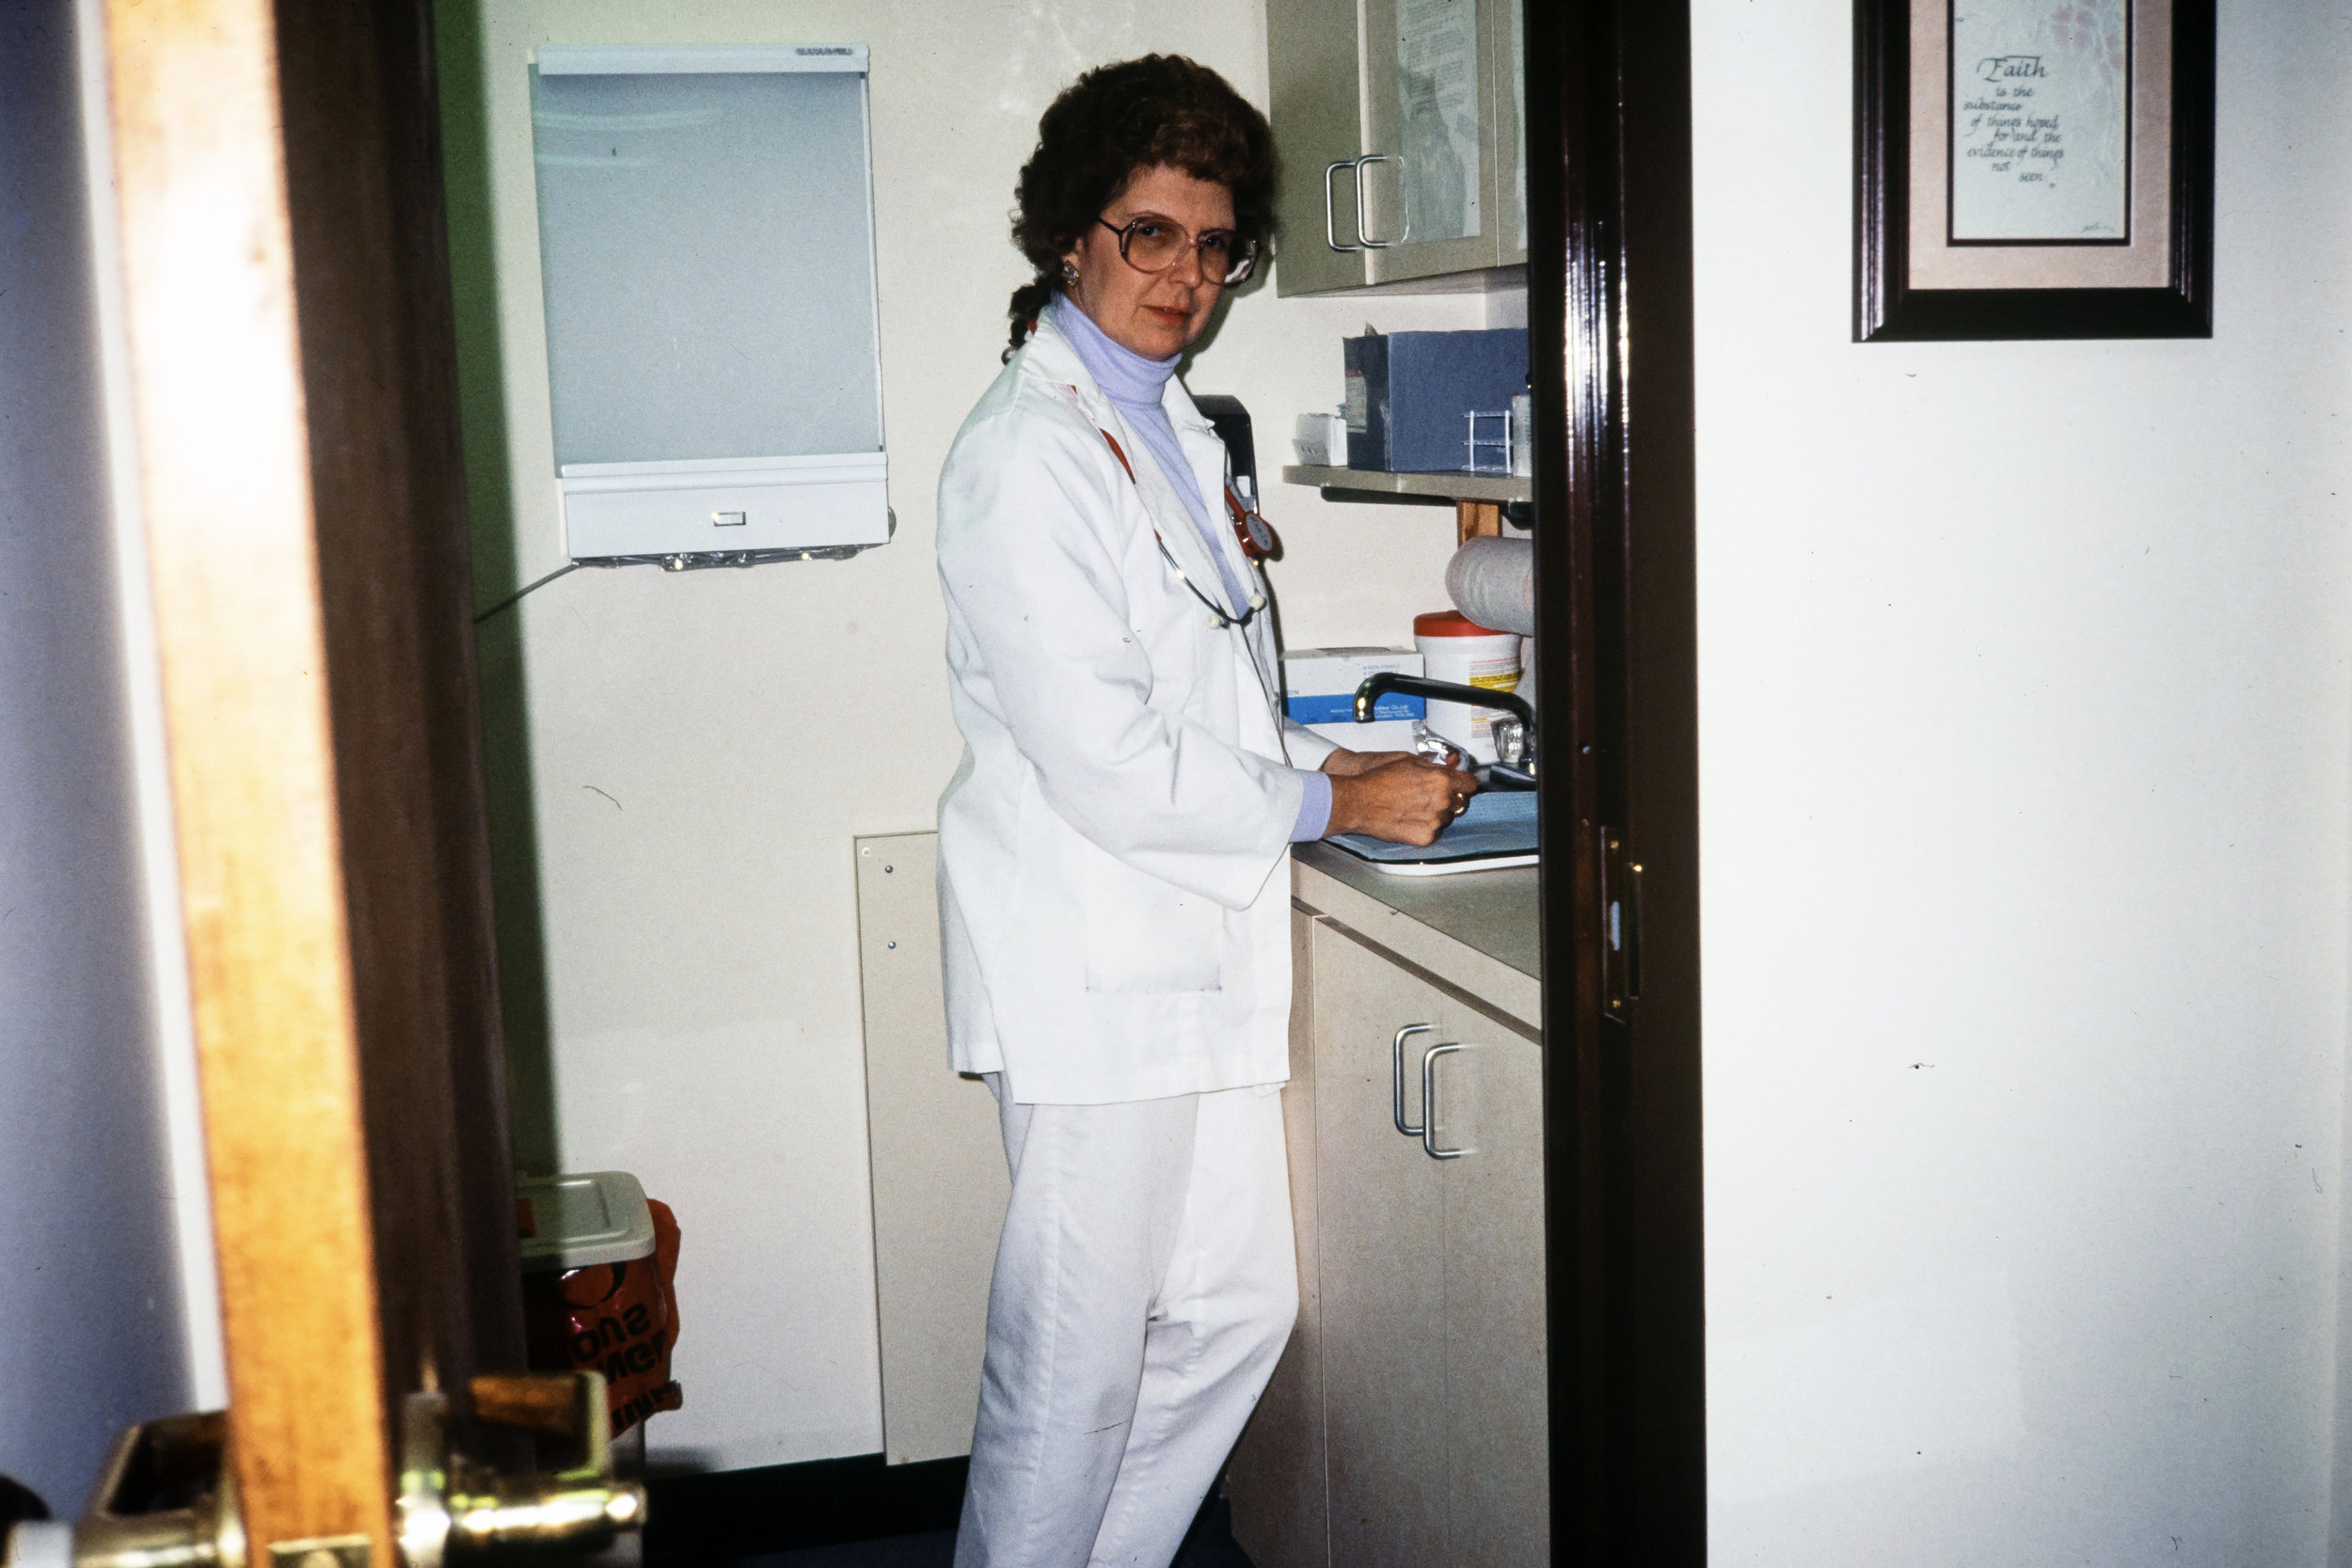 Kerin Smith from her days as a nurse at GraceMed